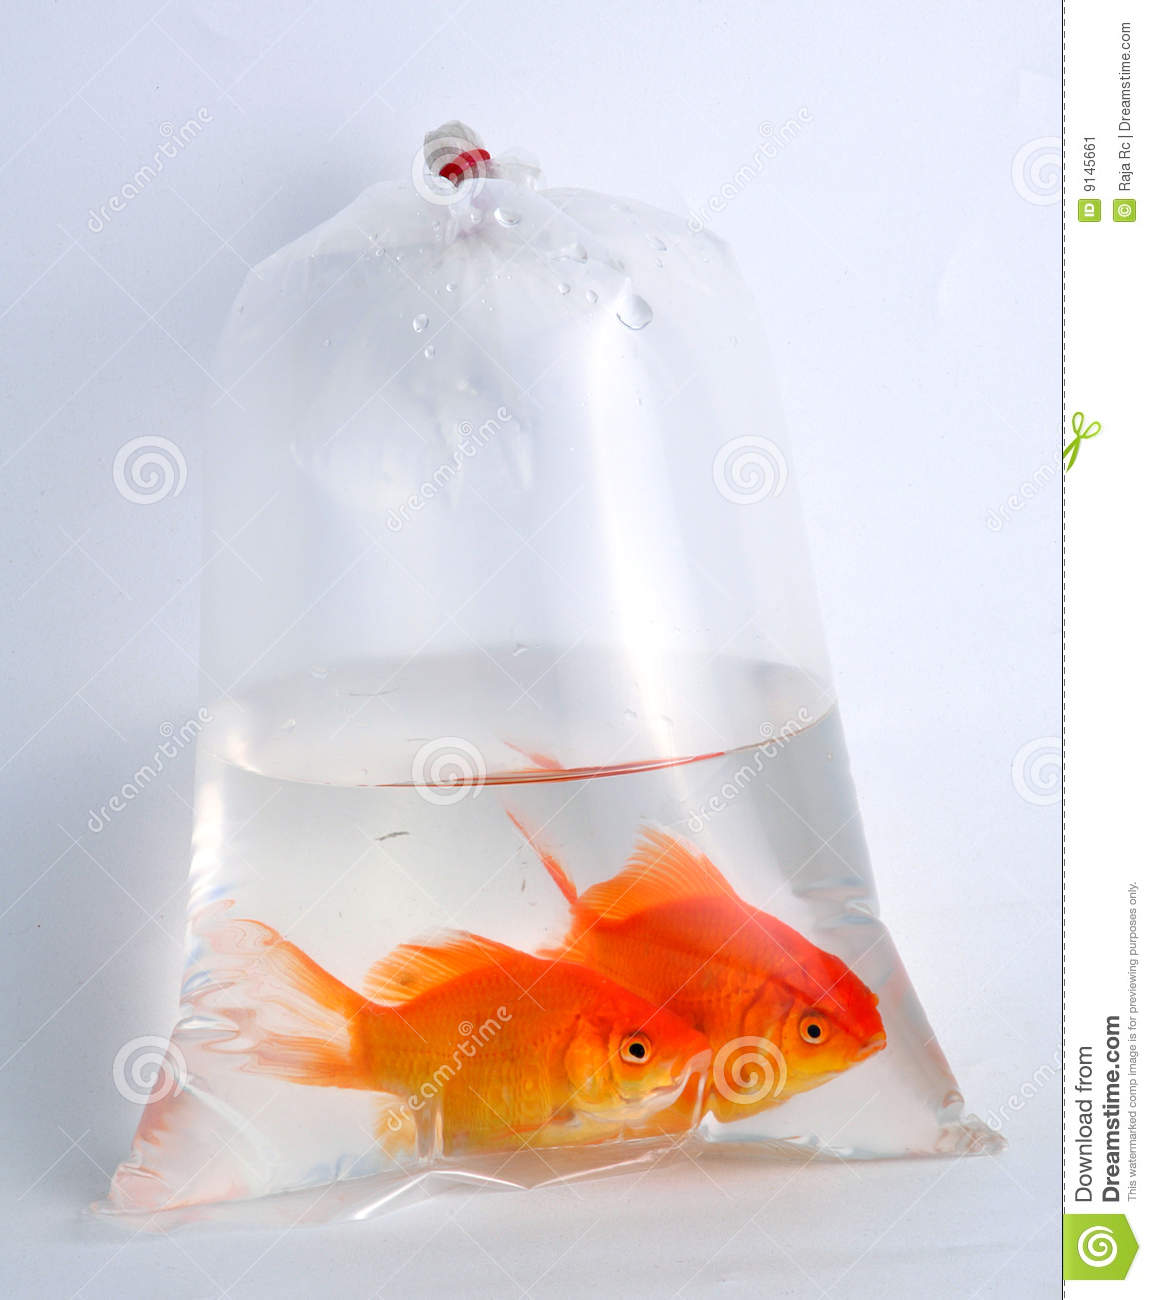 gold fish in plastic bag stock image   image 9145661